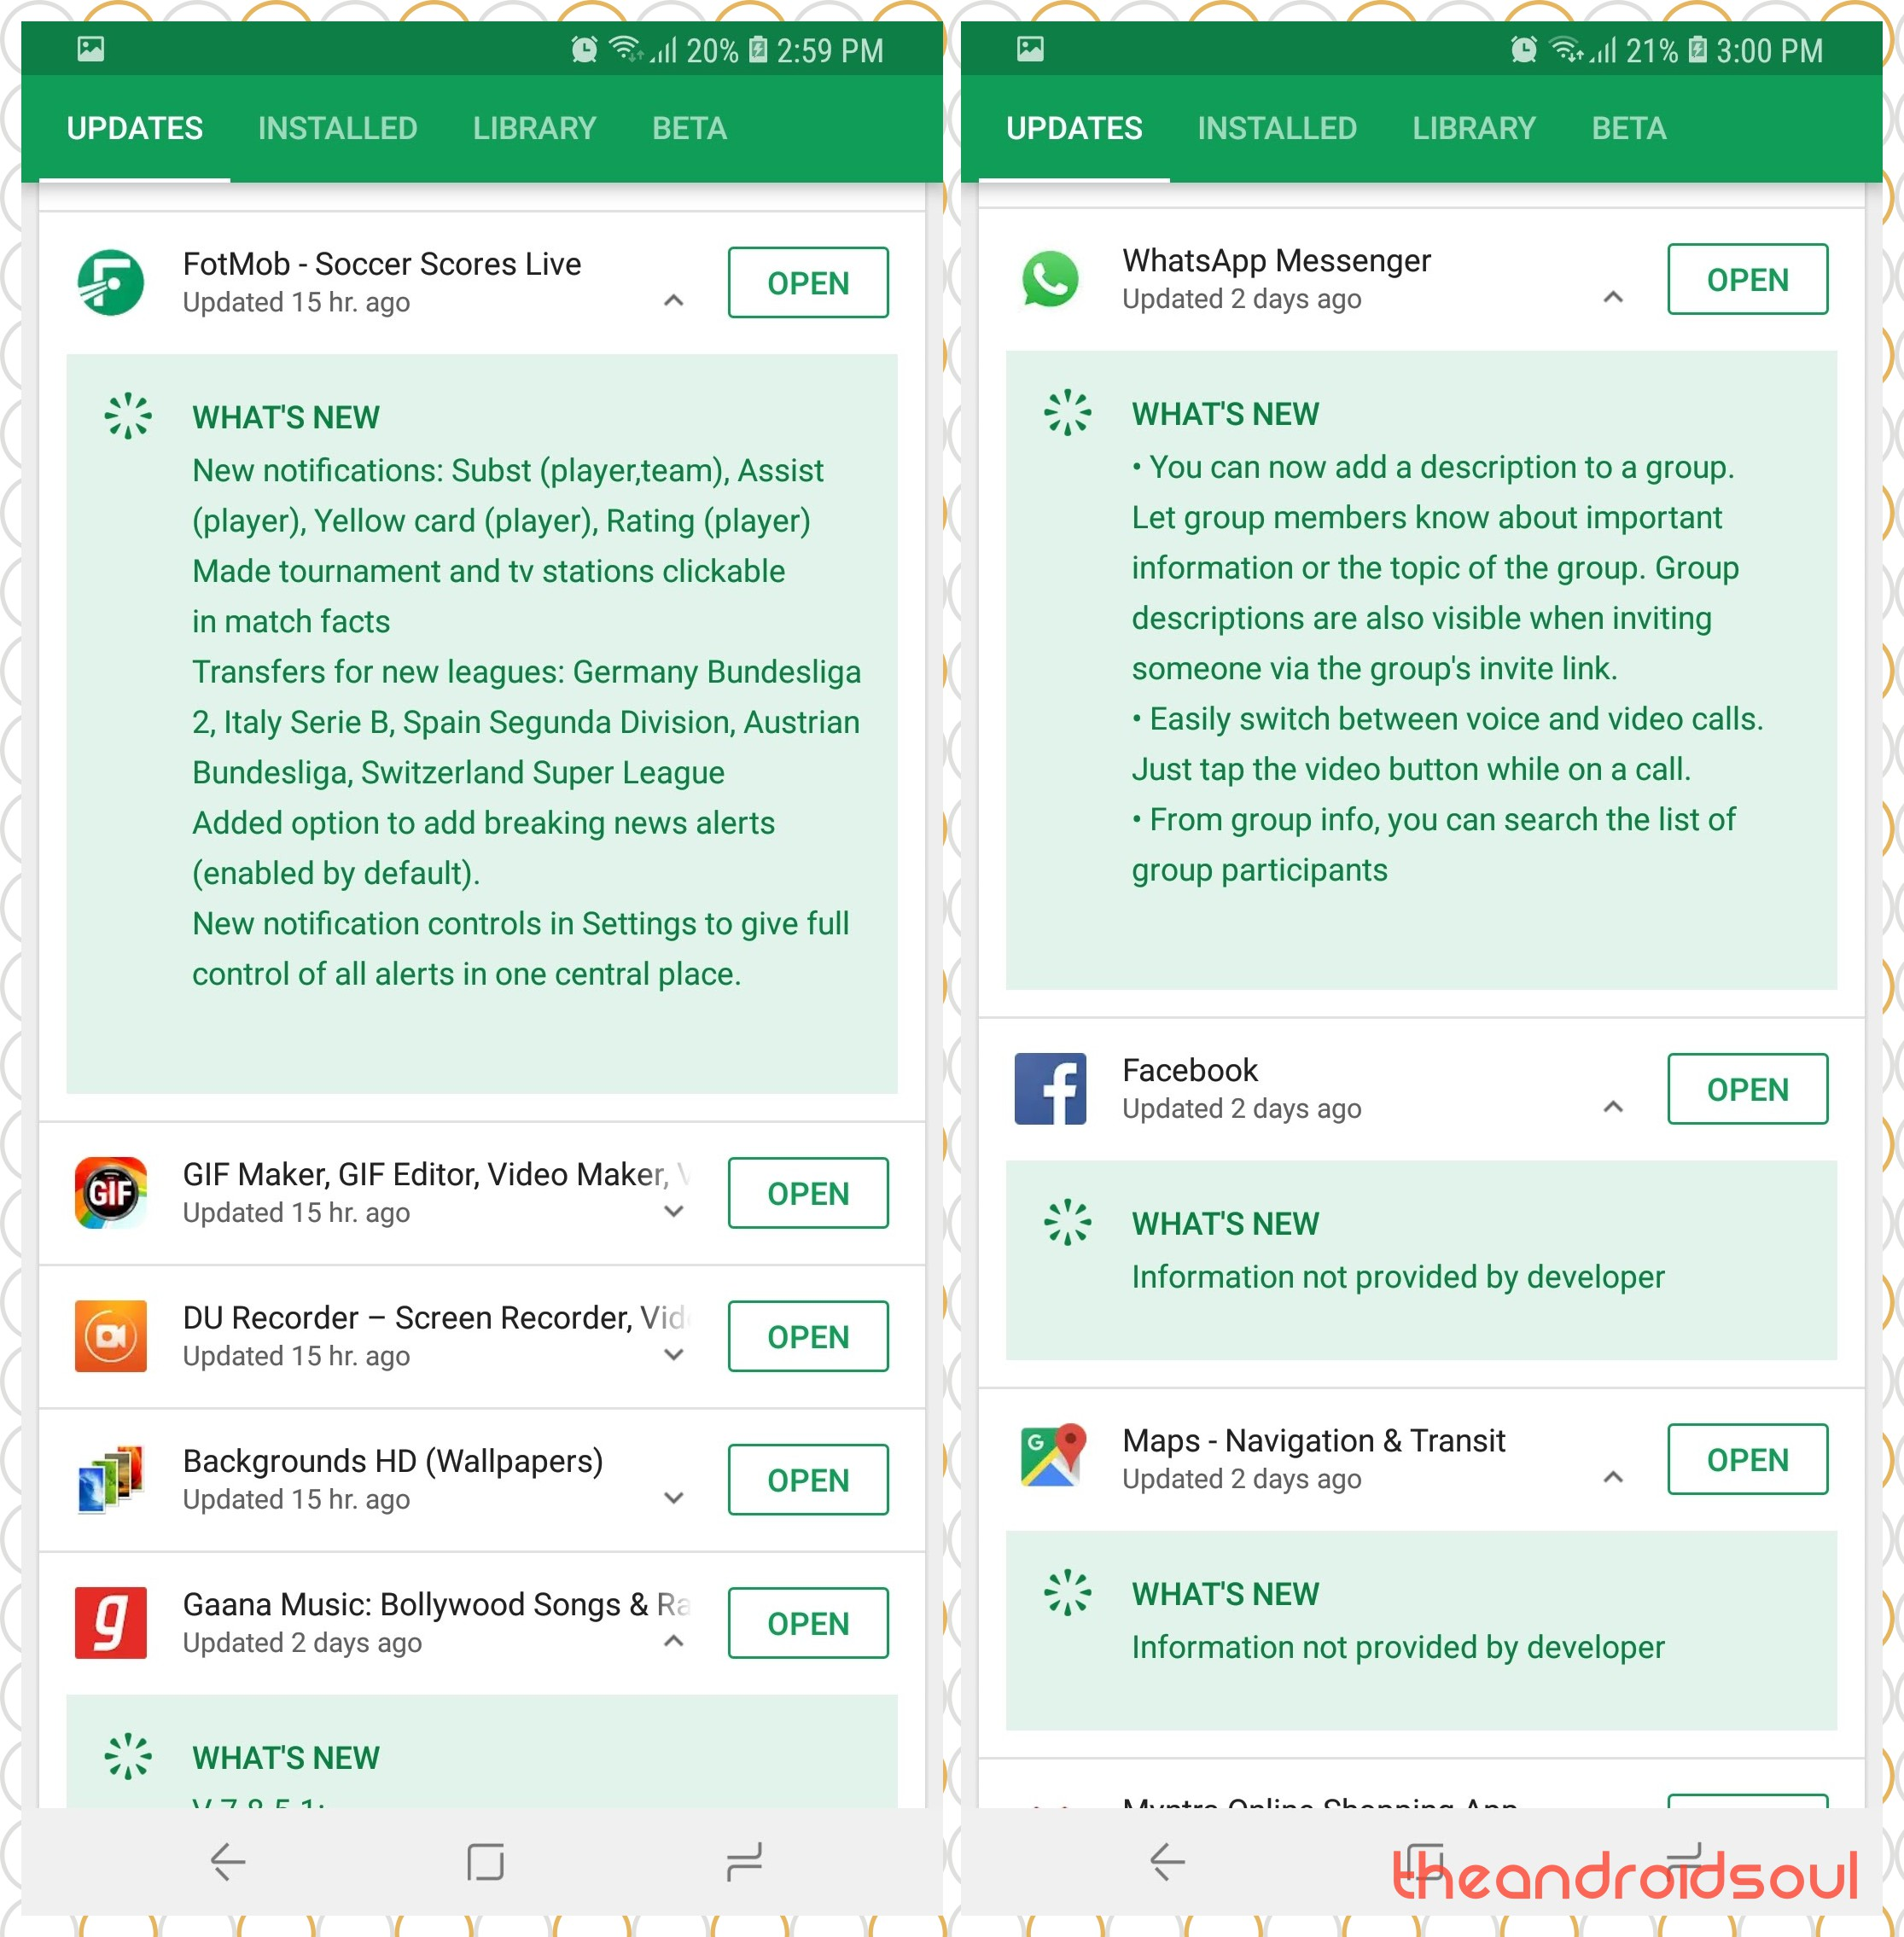 play store download for android 5.1.1